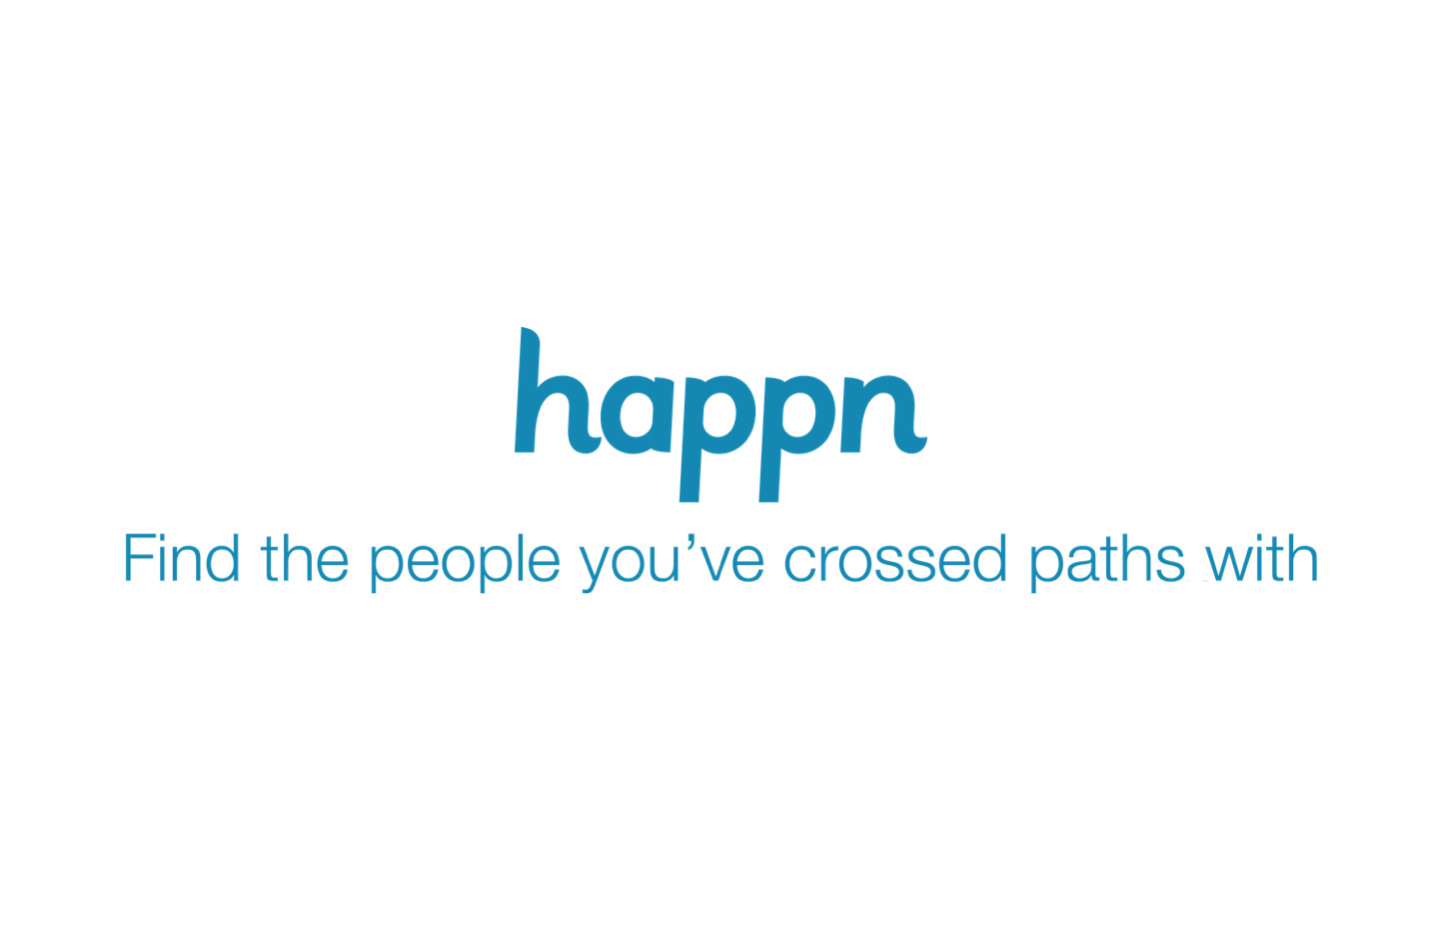 EXCLUSIVE: Happn Closed Third Funding Round In January 2017